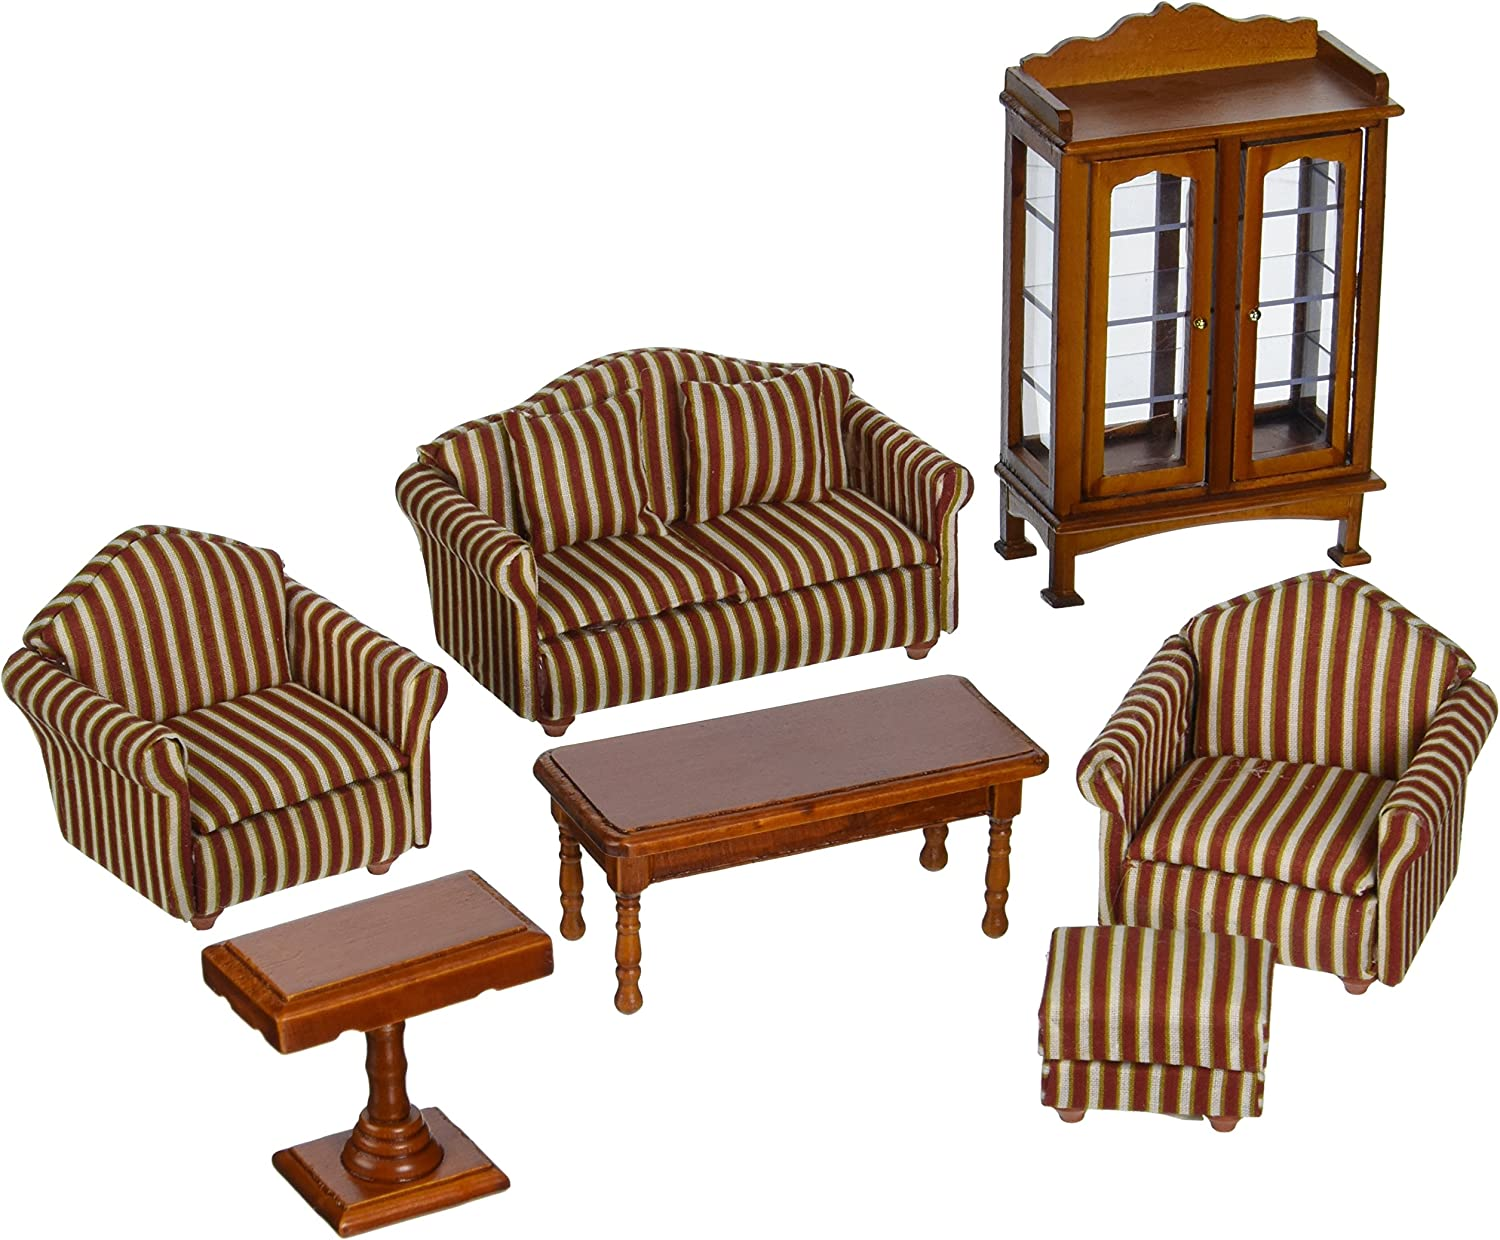 Melissa Doug Classic Victorian Wooden And Upholstered Dollhouse Living Room Furniture 9 Pcs Amazon Ca Toys Games